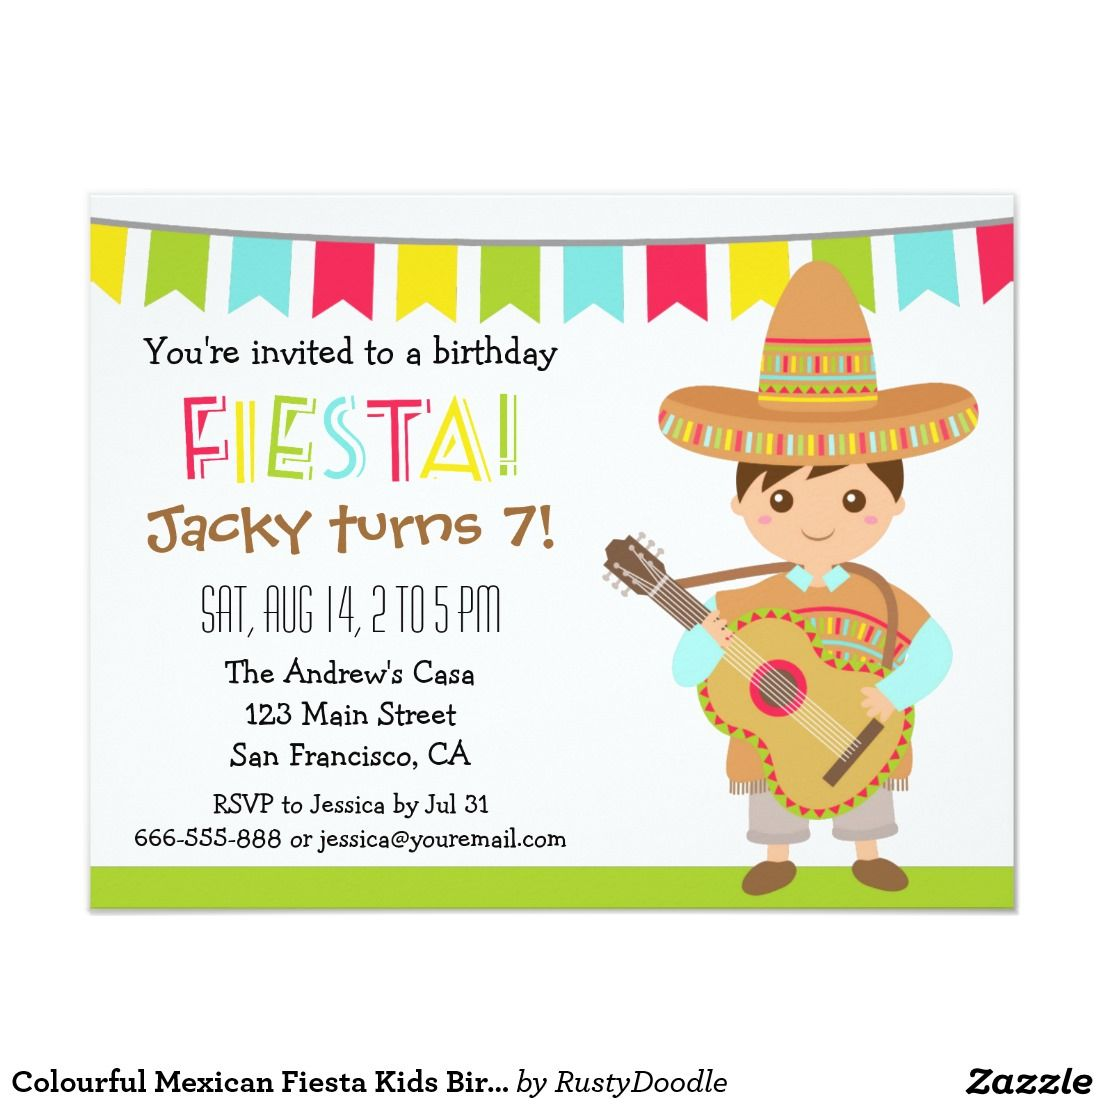 Colourful Mexican Fiesta Kids Birthday Party 425 X 55 Invitation